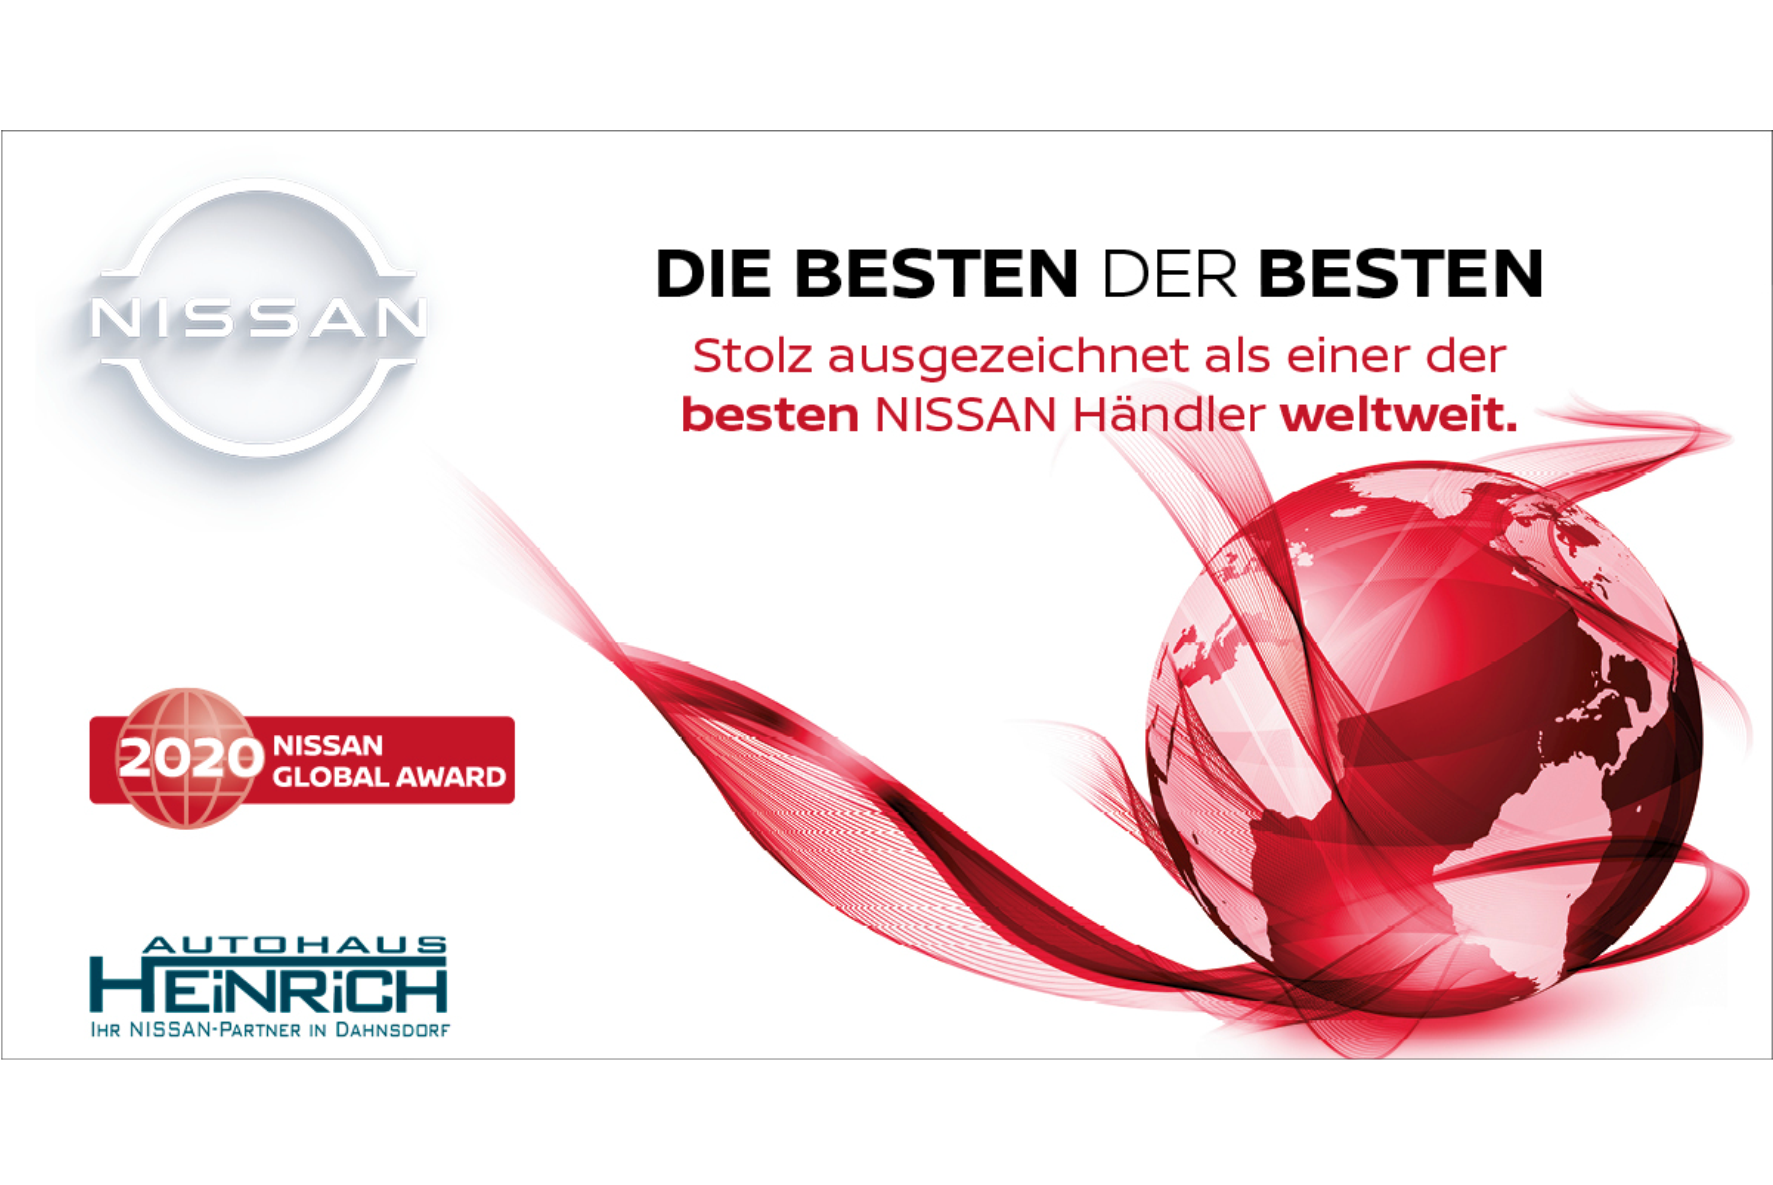 NISSAN GLOBAL AWARD 2020